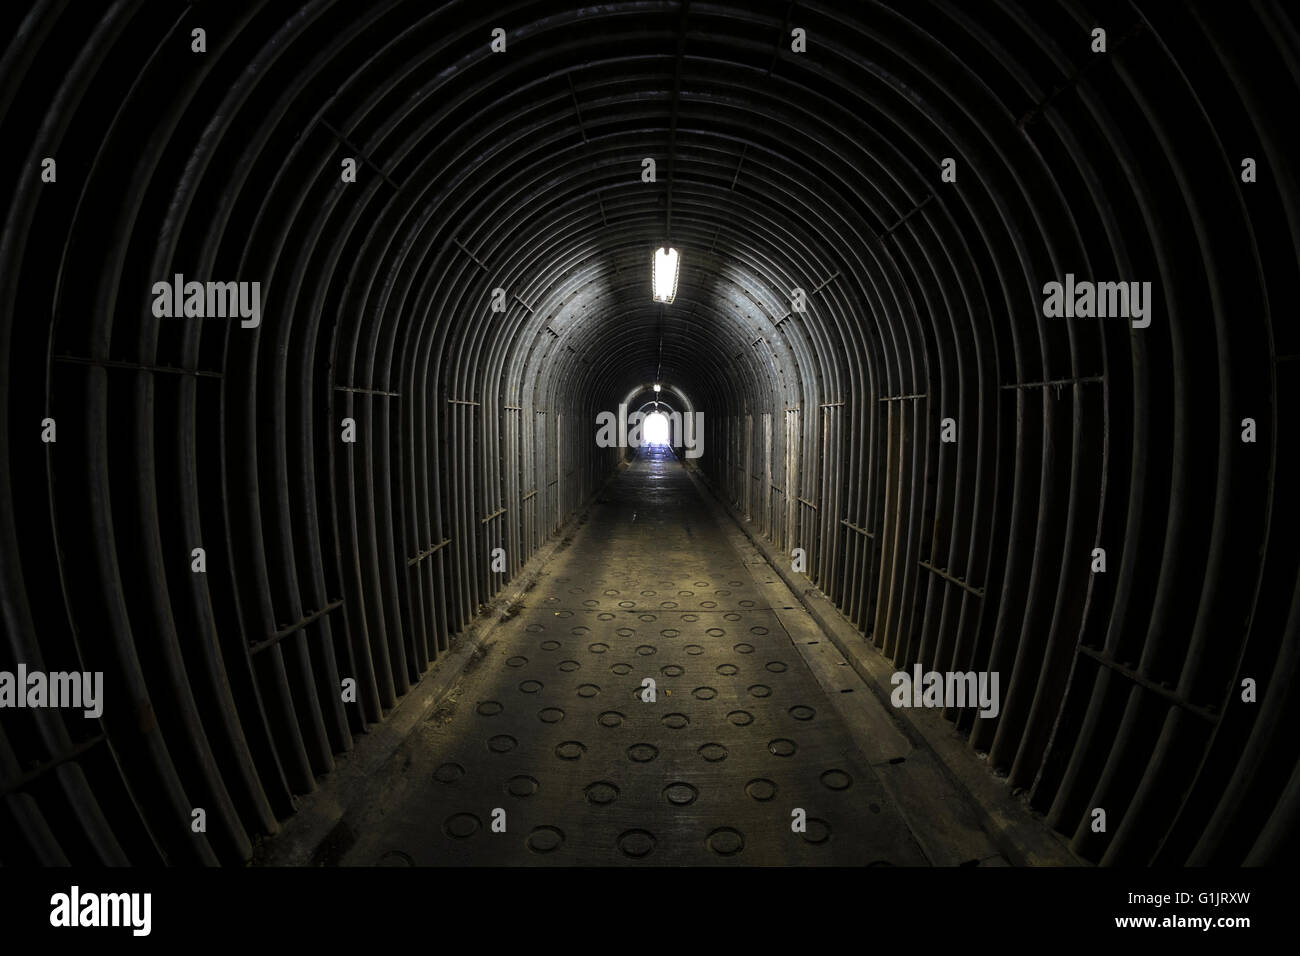 A view down a tunnel - Stock Image